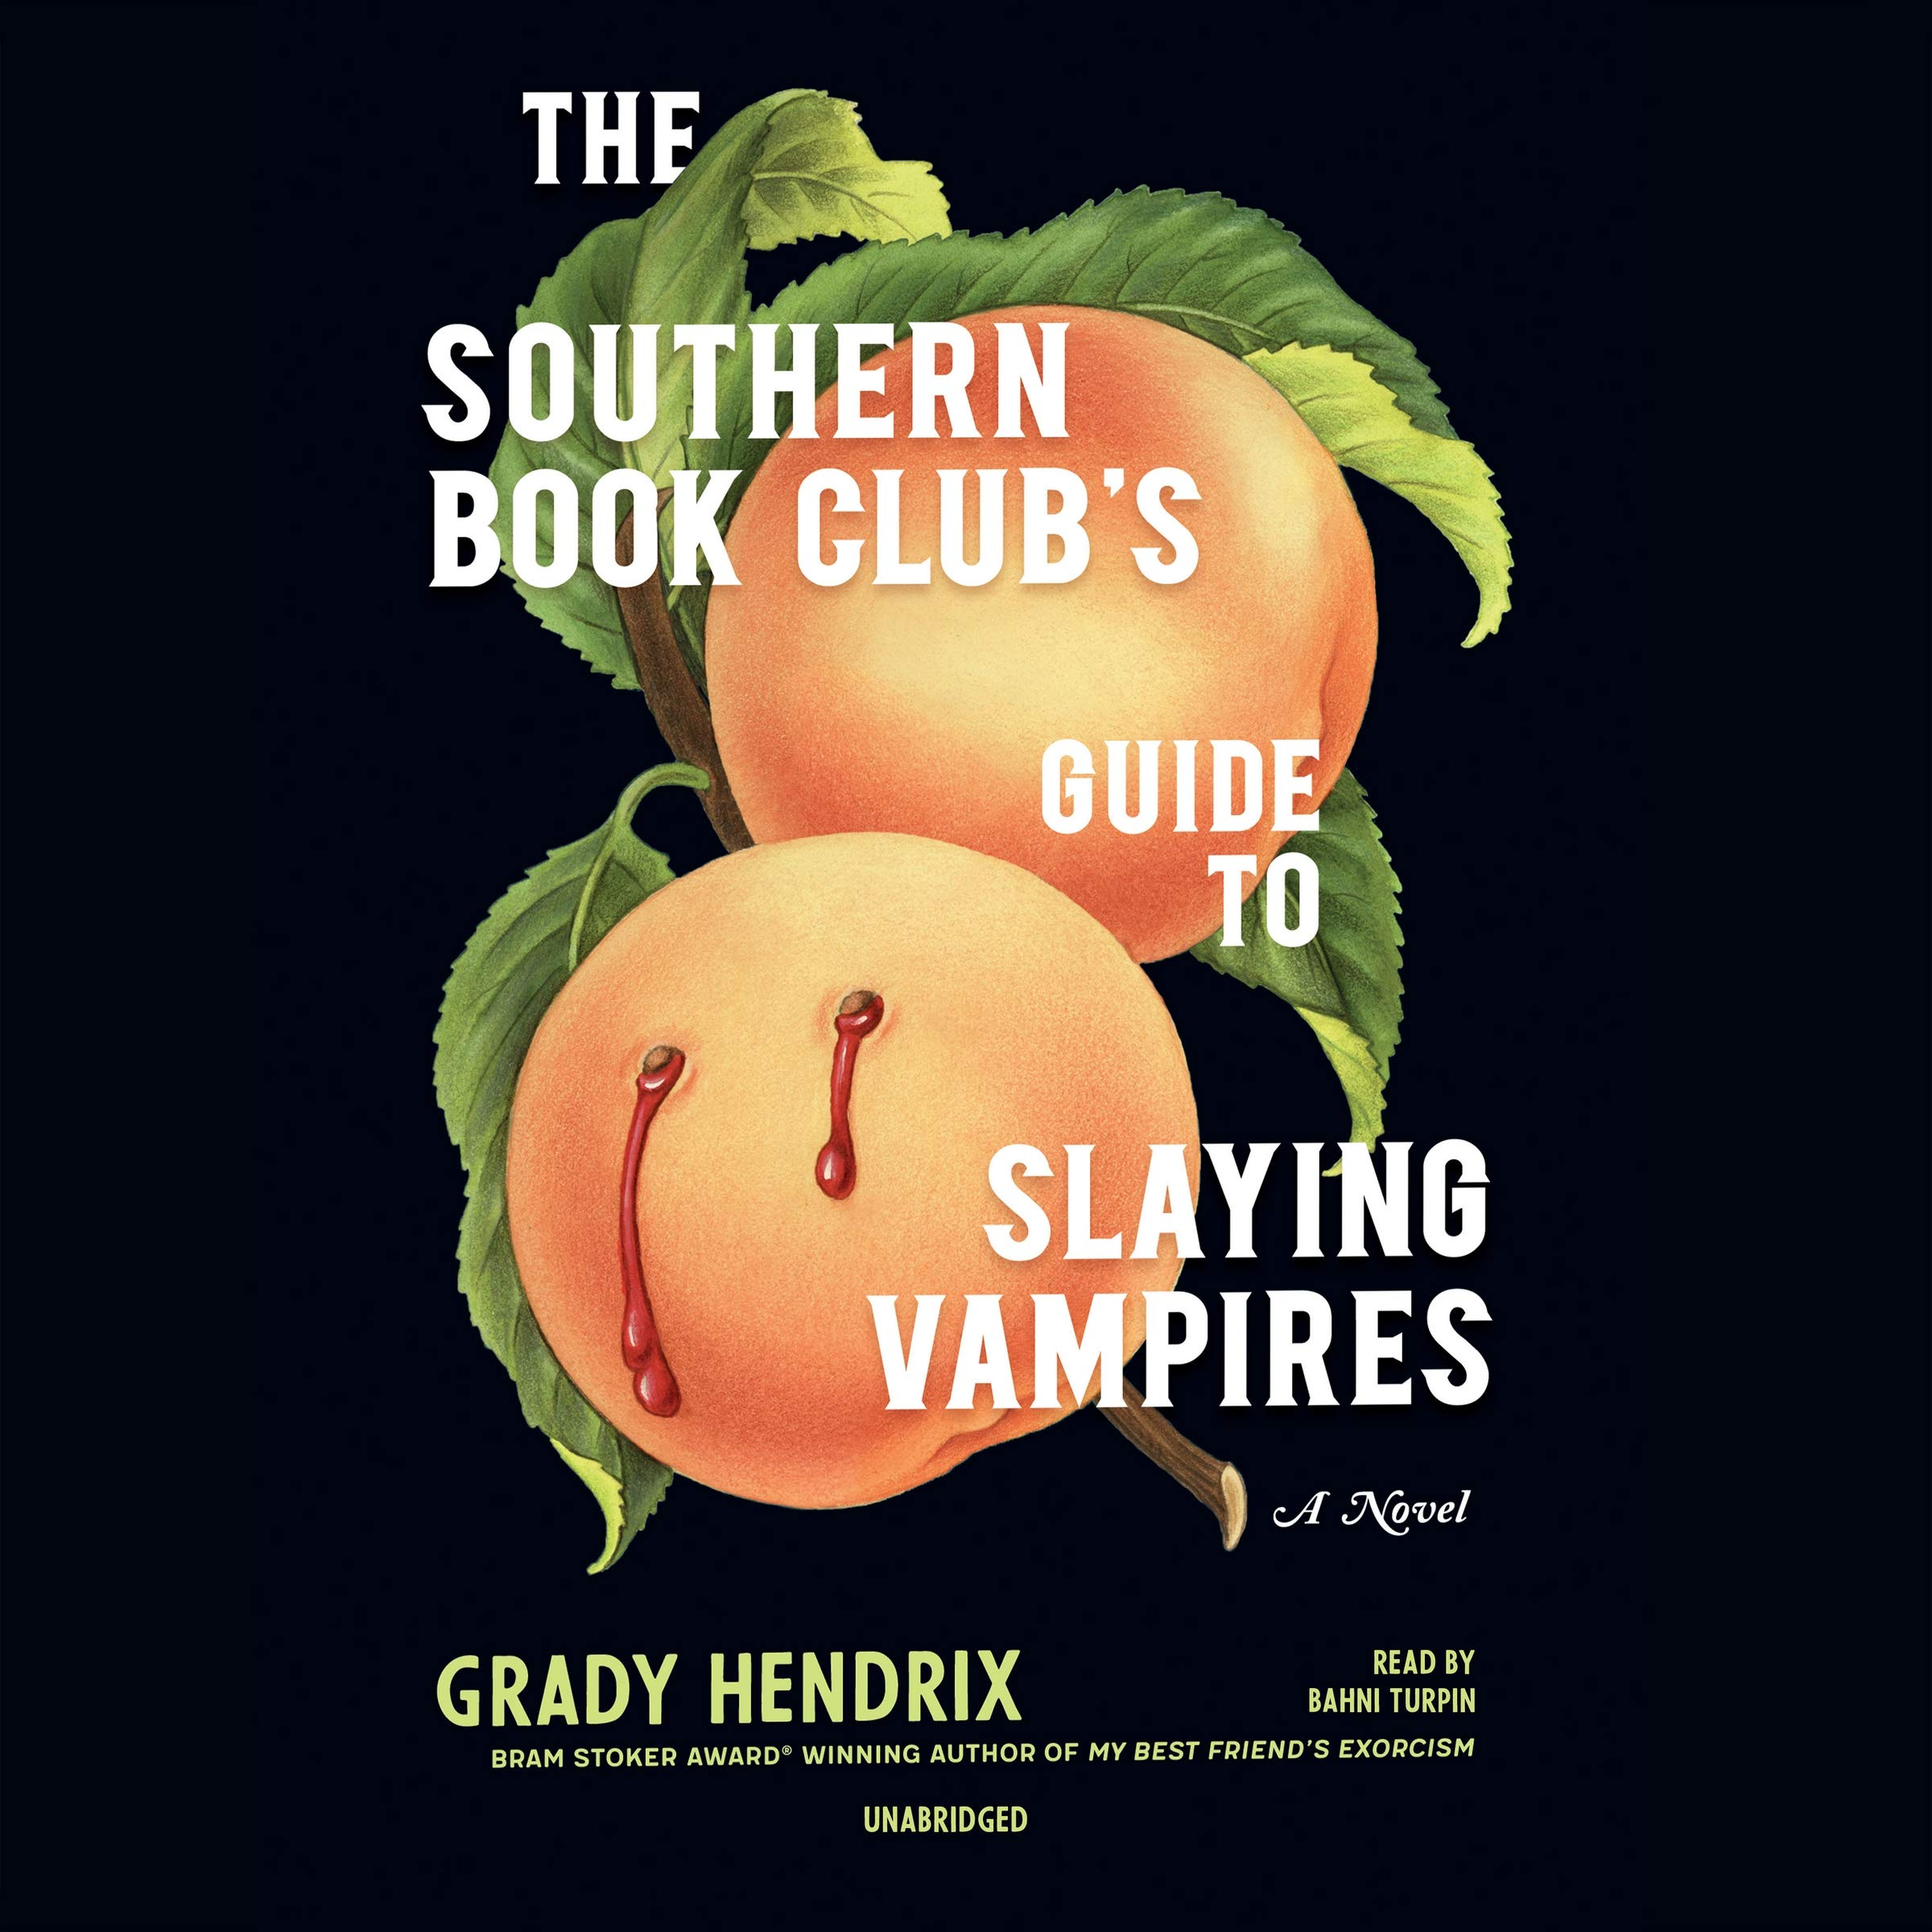 The Southern Book Clubs Guide to Slaying Vampires: Grady Hendrix ...